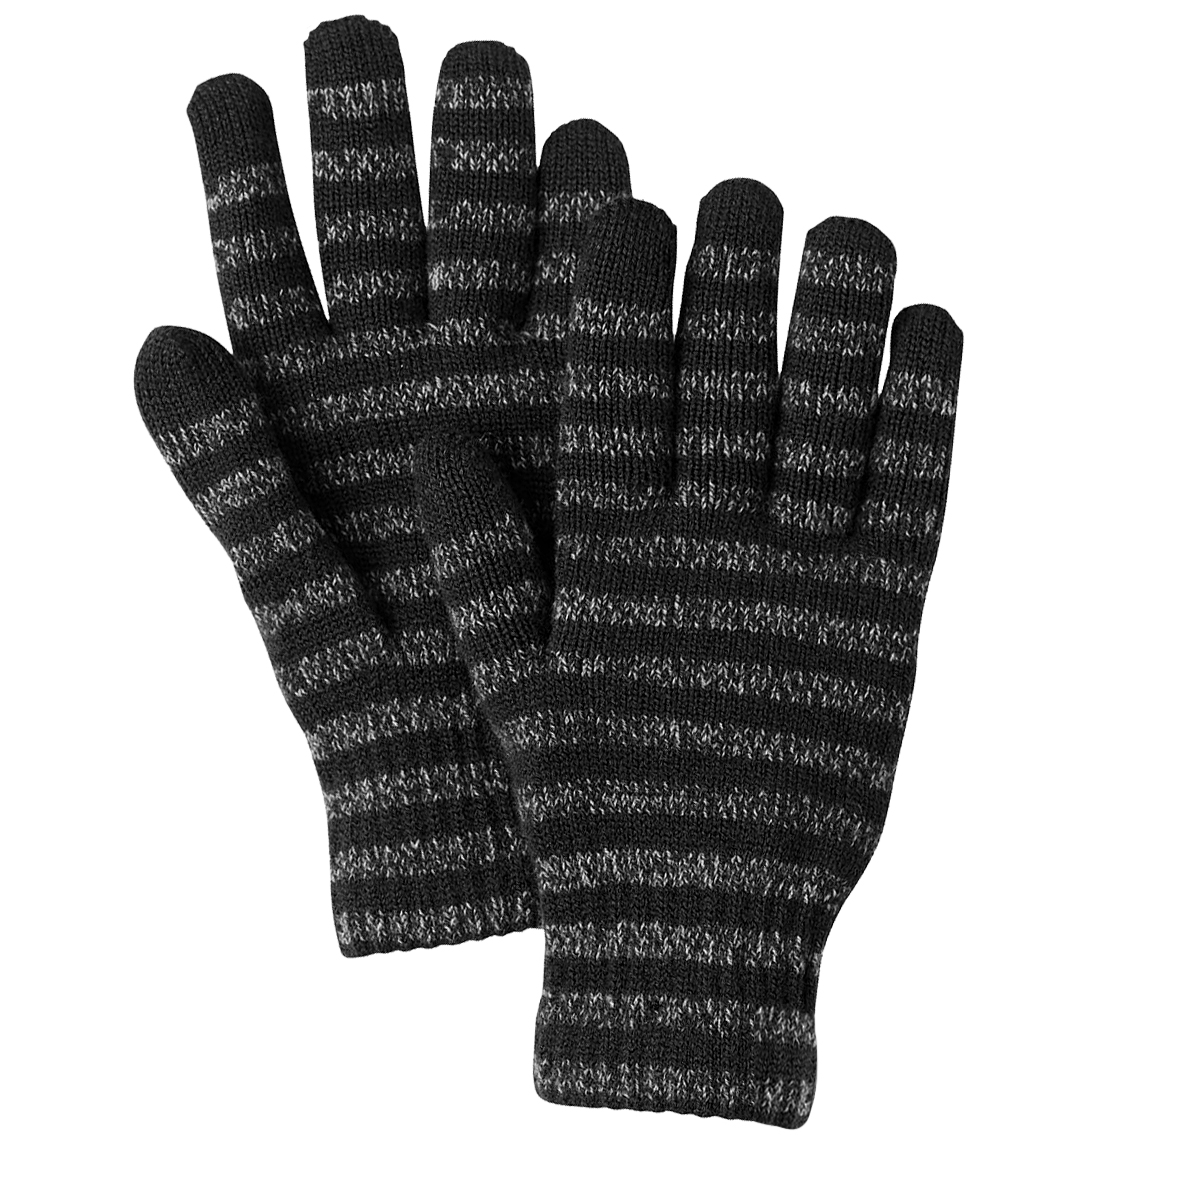 Merino Wool Touch Screen Glove/MWG-004-D